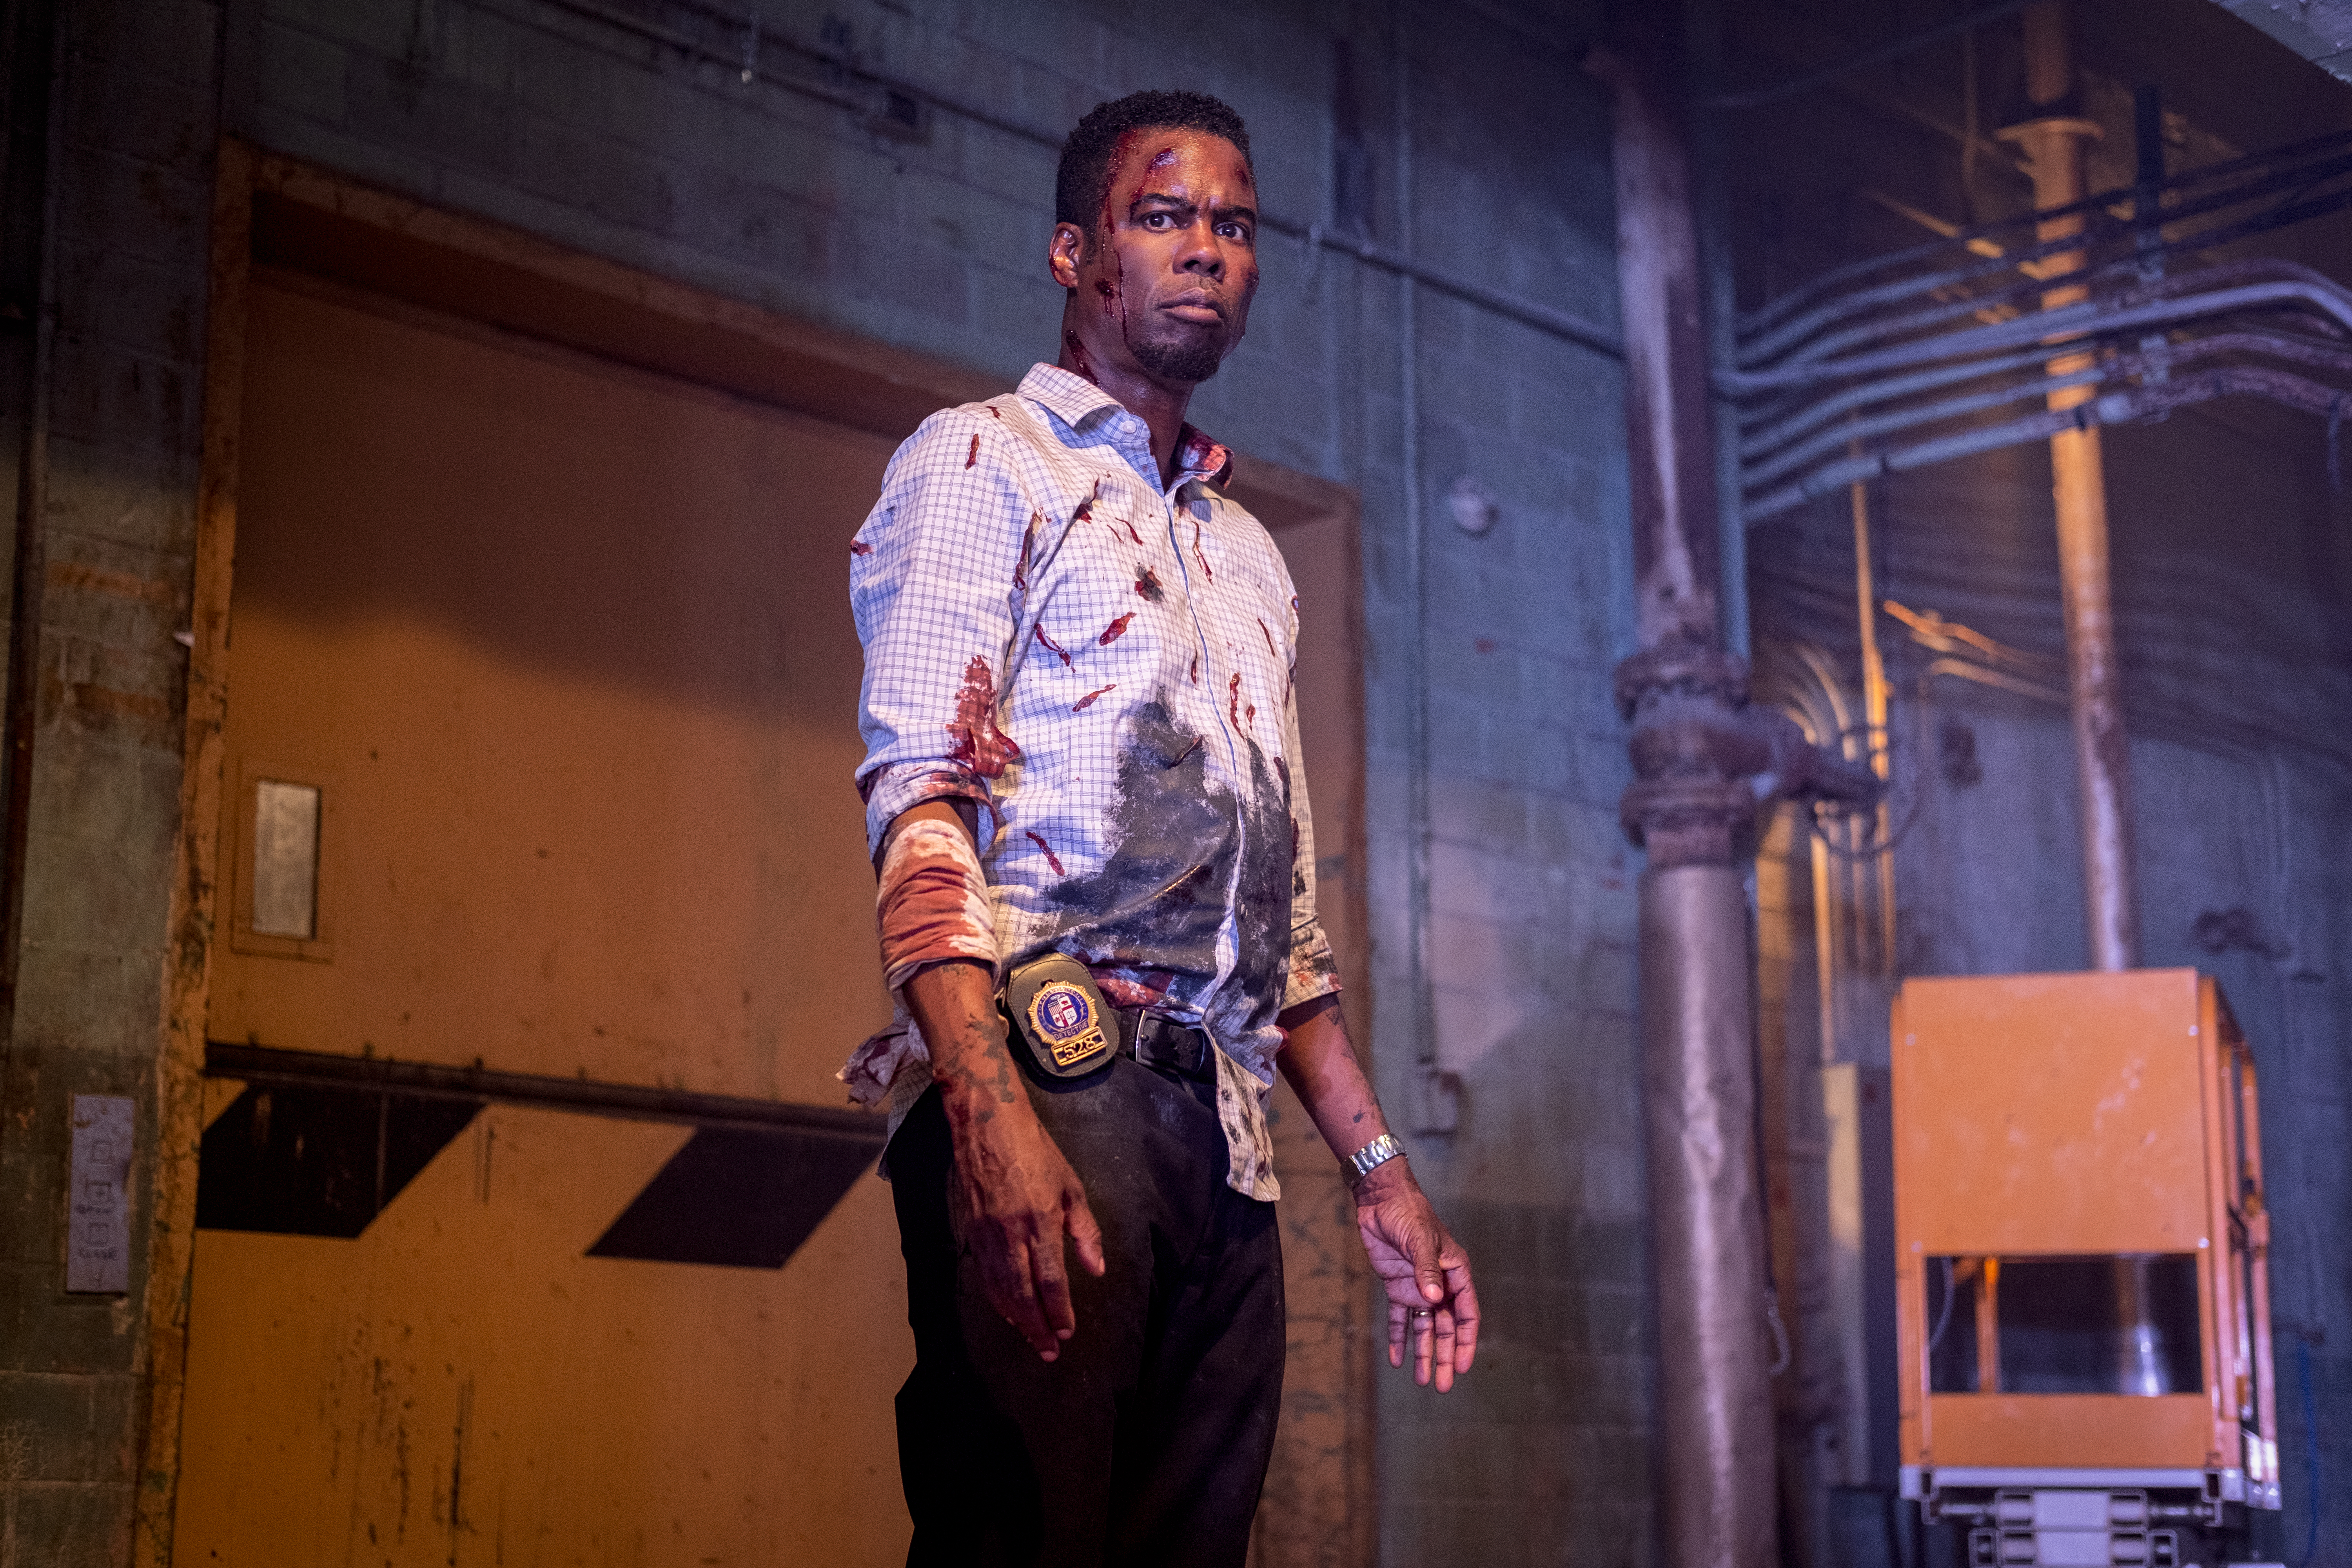 Spiral: Chris Rock covered in blood in the new Saw reboot